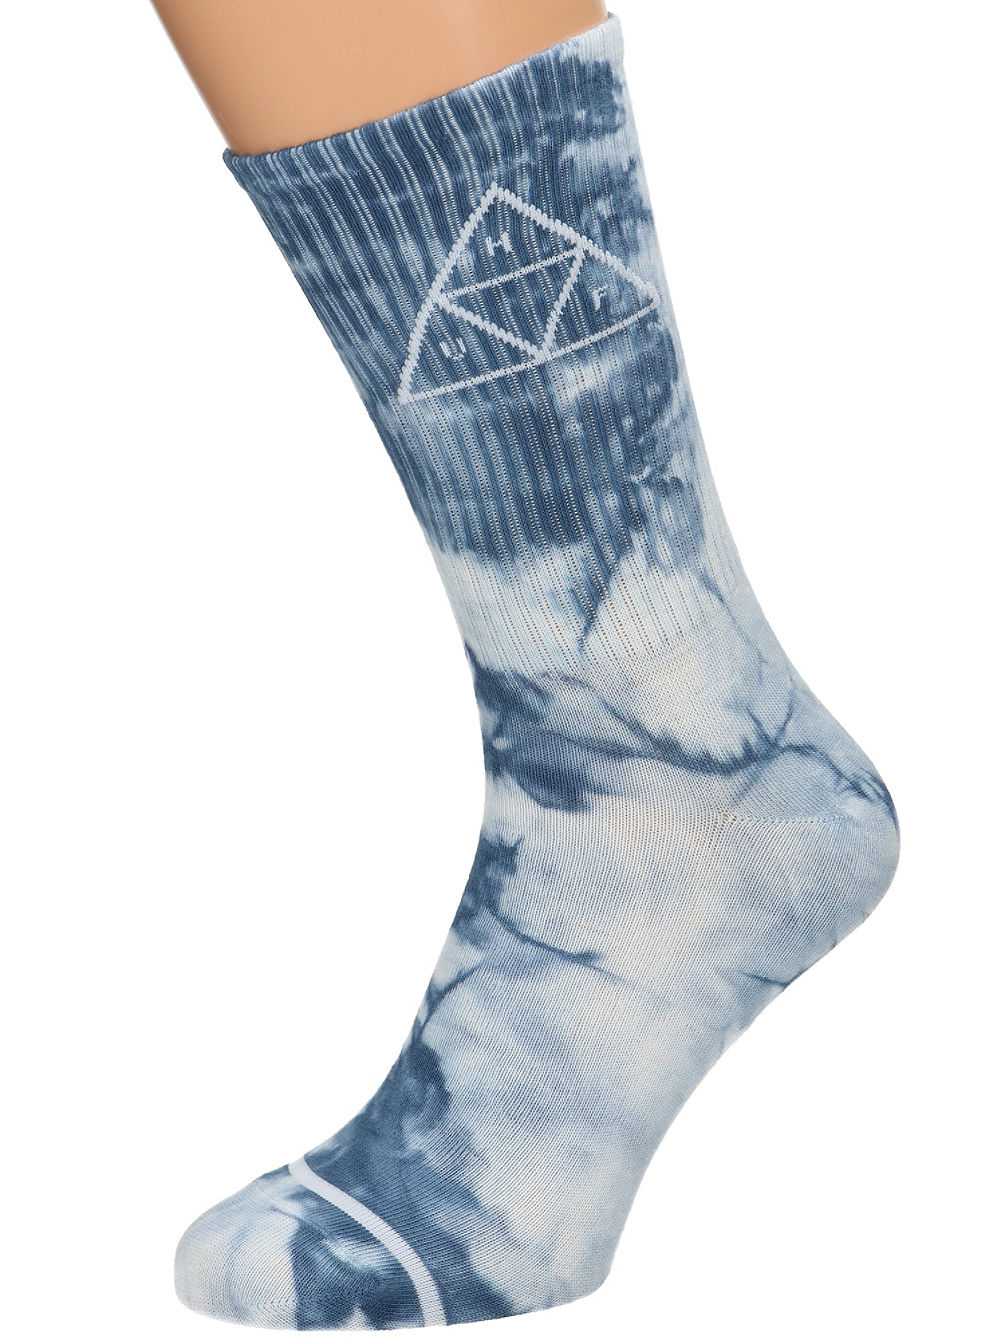 3035366f74f Buy HUF Spot Dye TT Crew Socks online at Blue Tomato